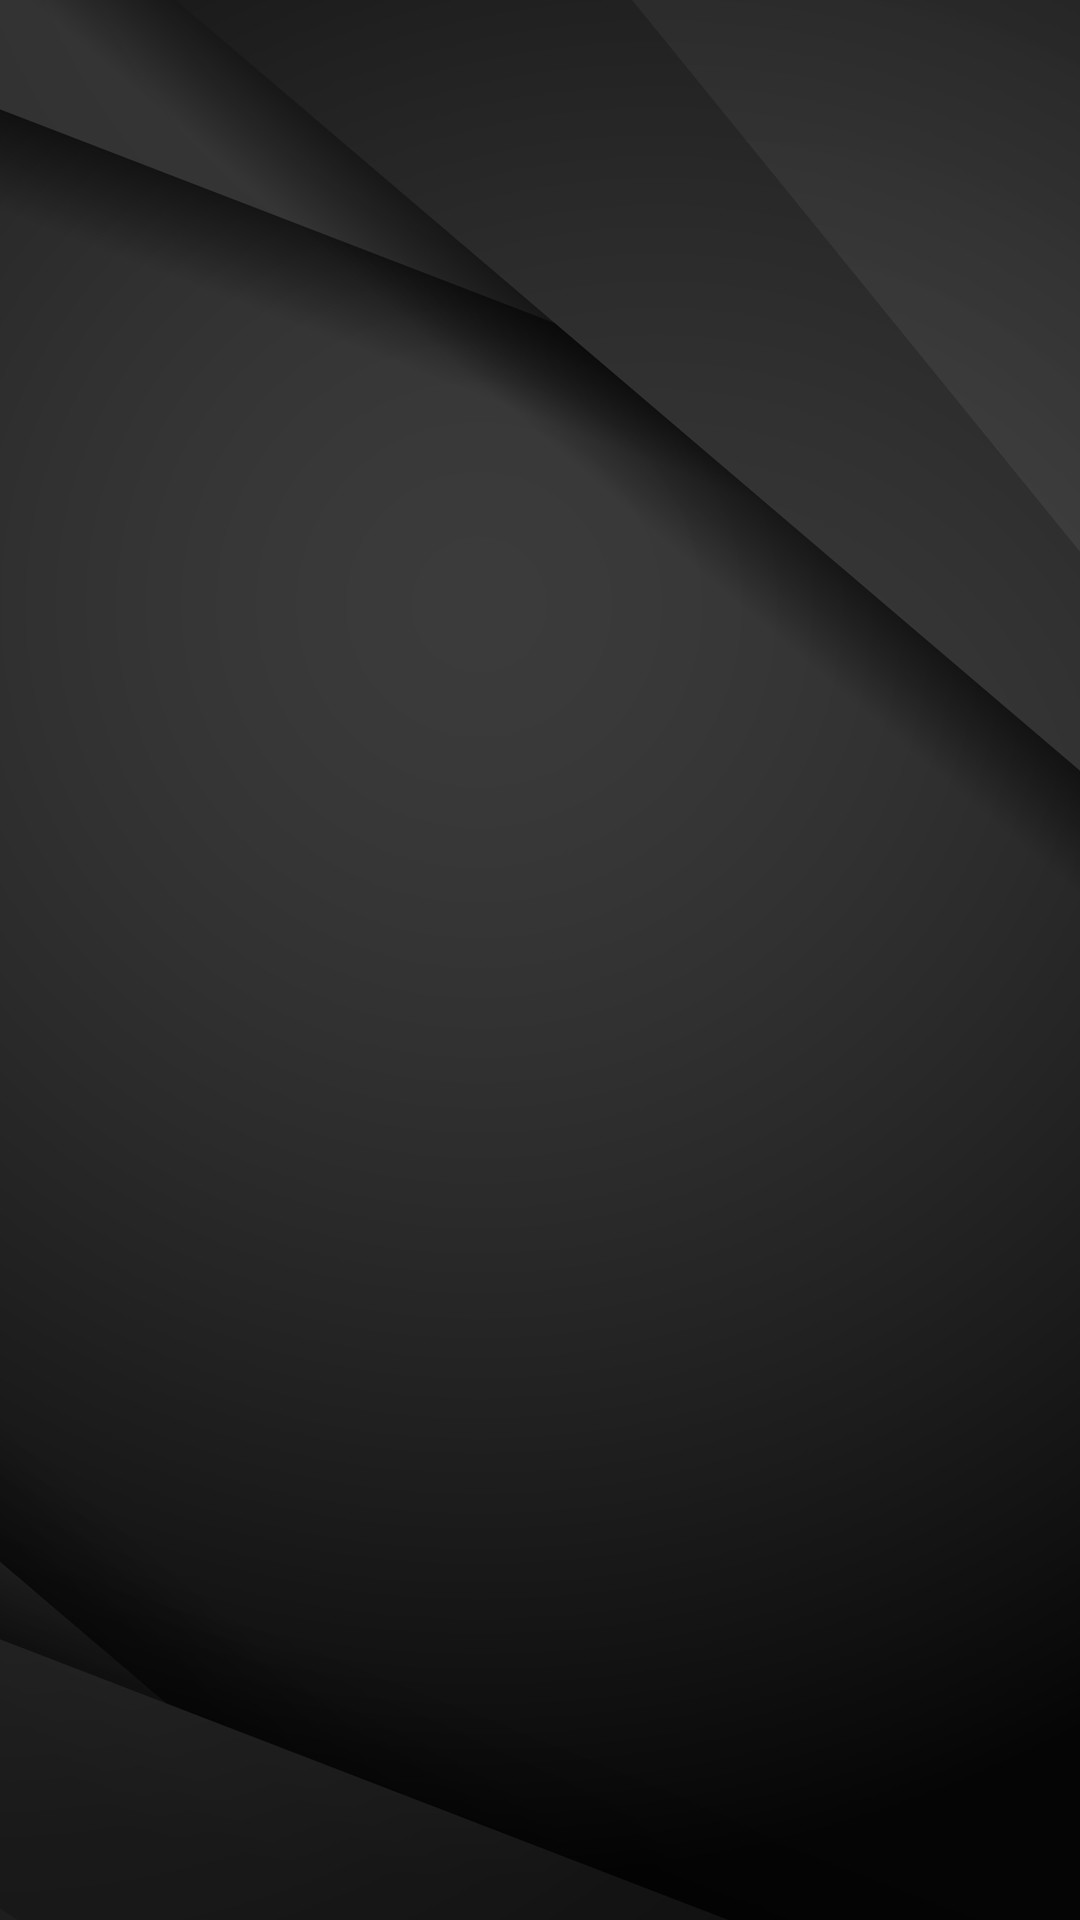 3d Black Abstract Wallpaper Backgrounds Bilder 281039 Dark